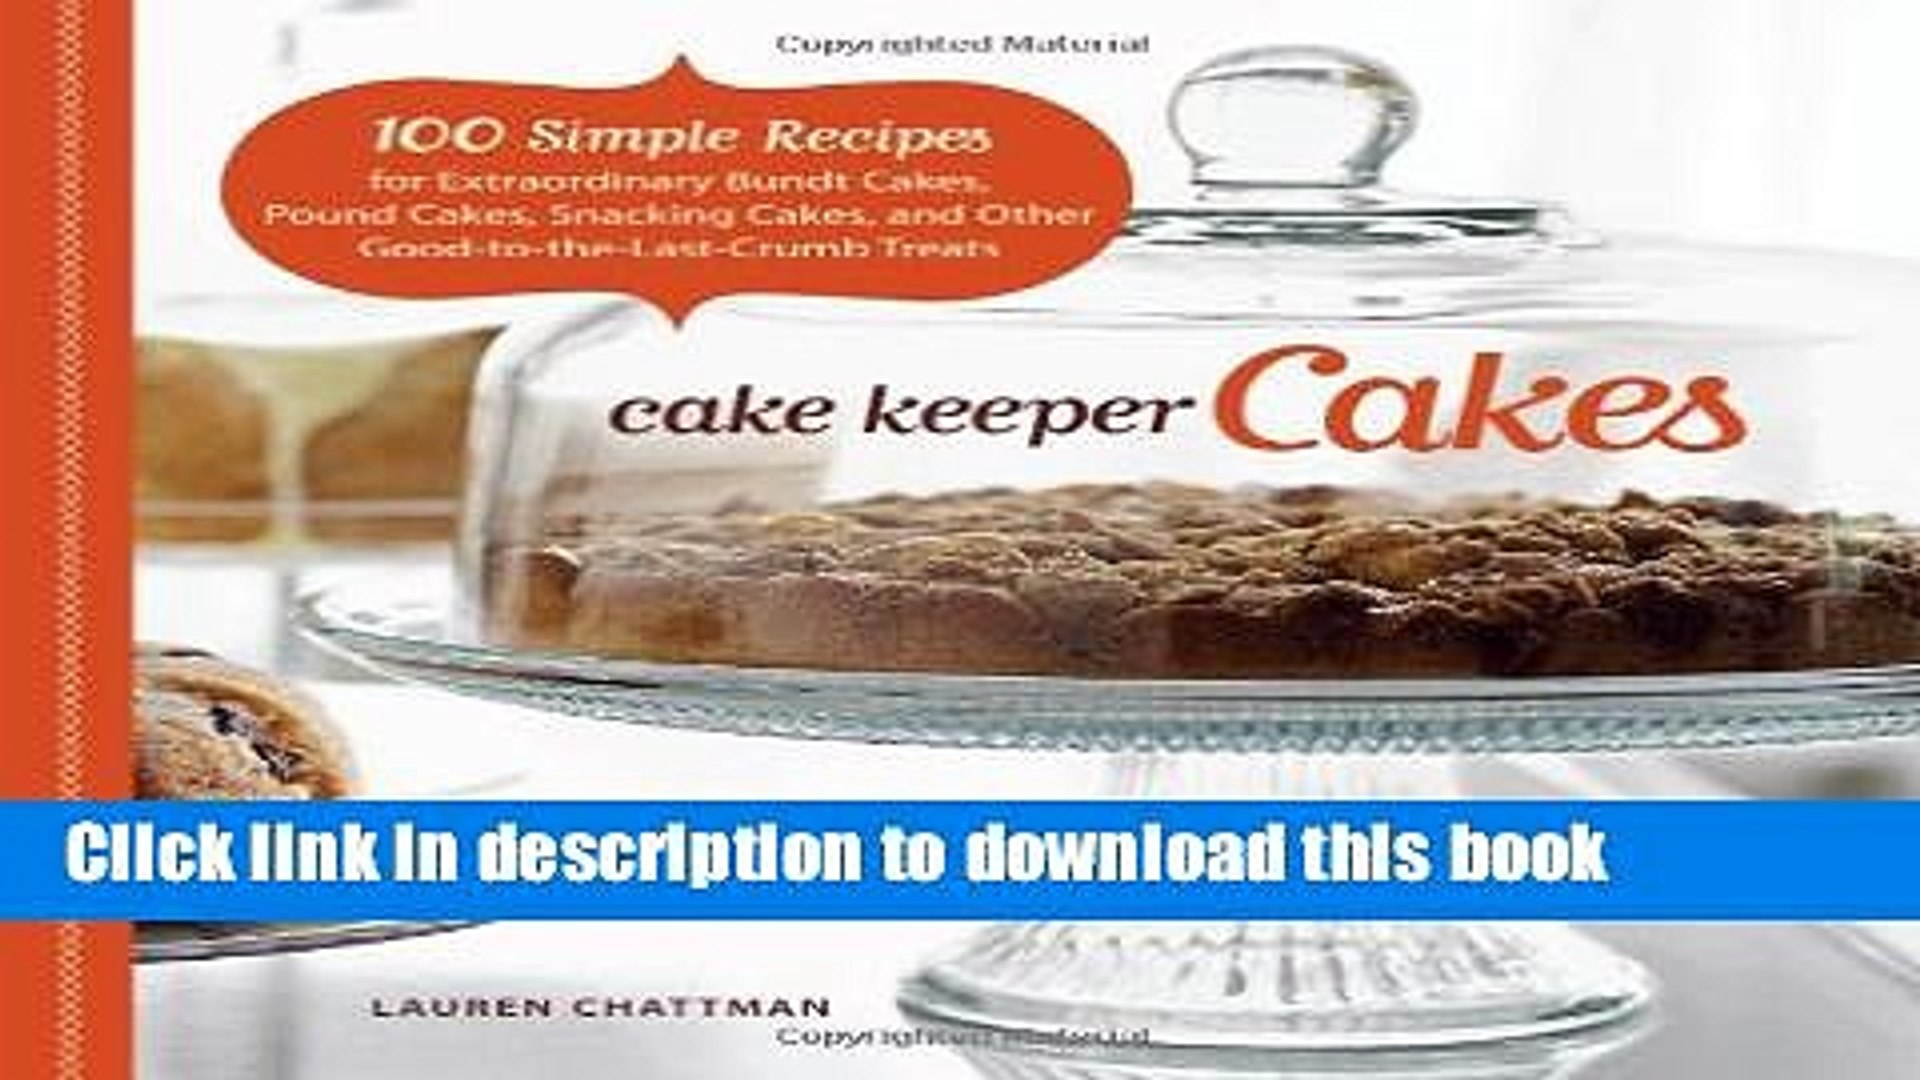 Read Cake Keeper Cakes: 100 Simple Recipes for Extraordinary Bundt Cakes, Pound Cakes, Snacking